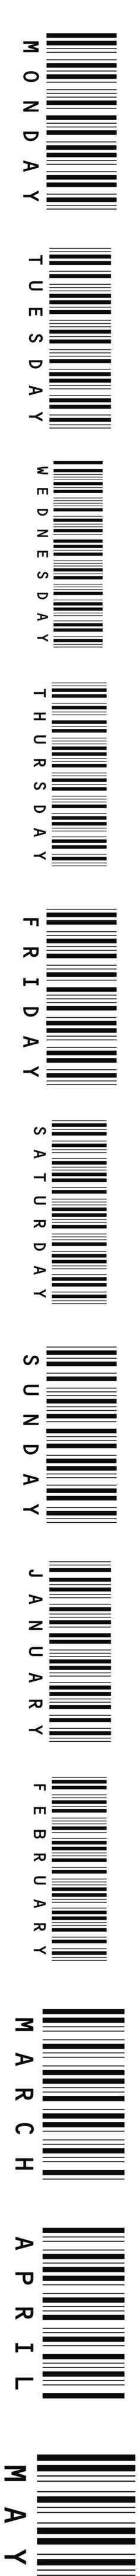 Text Barcodes by meowshoe on Polyvore featuring fillers, phrase, quotes, saying, text, words and backgrounds